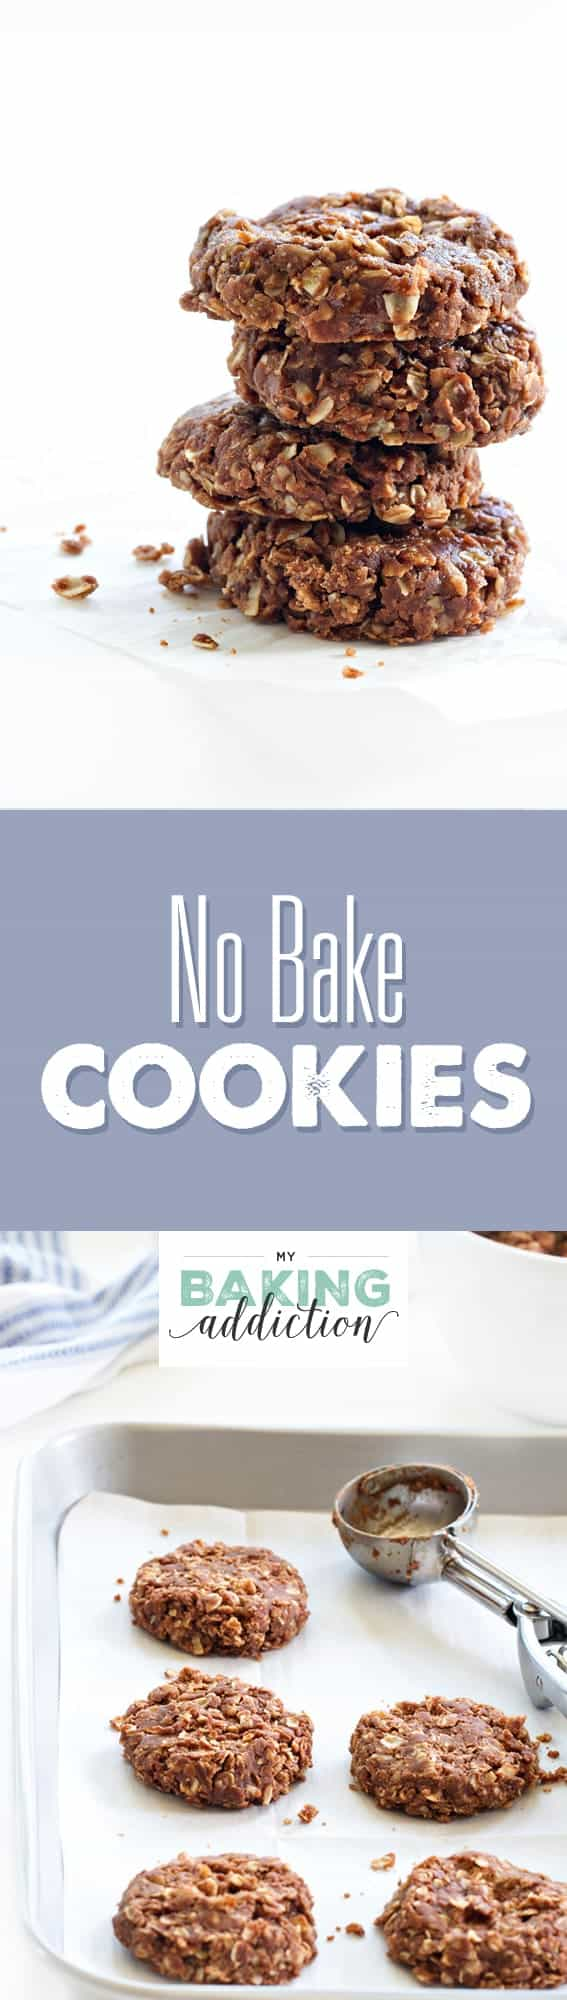 No Bake Cookies come together in a matter of minutes. This is a recipe you'll love for years to come!